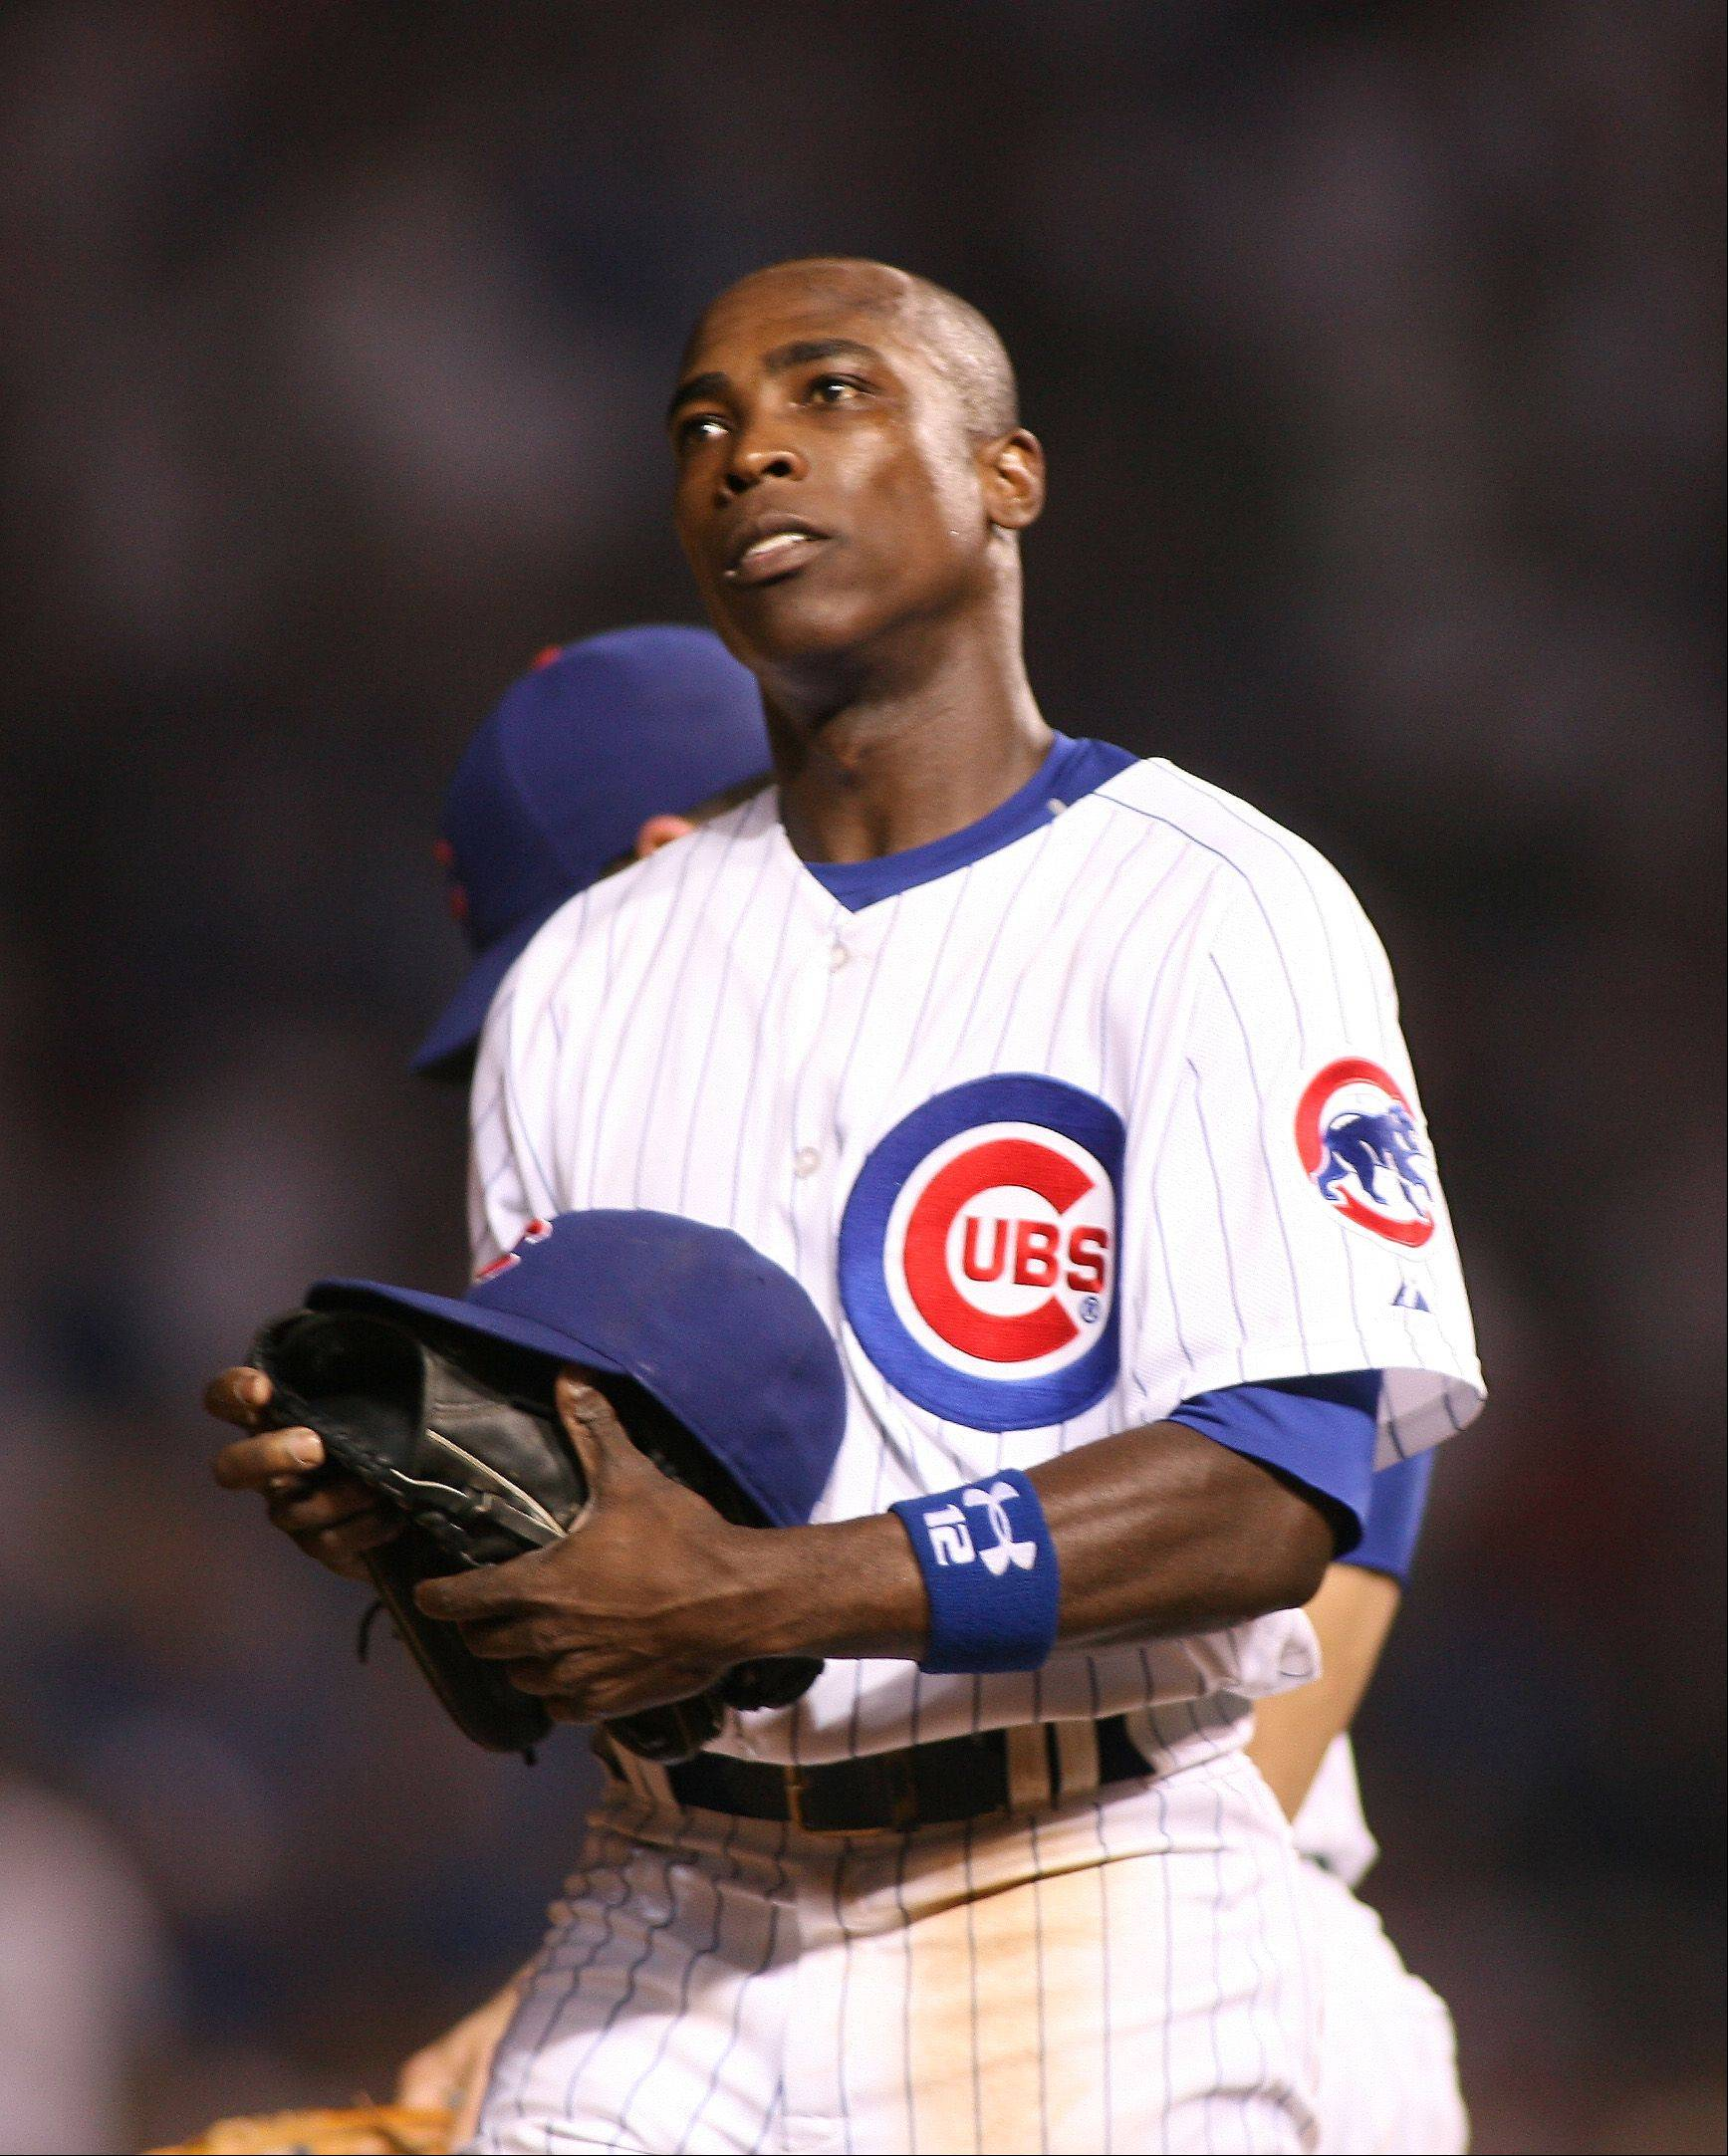 Alfonso Soriano, who reportedly flew to New York on Thursday night, is expected to be in the New York Yankee lineup for Friday's game against Tampa. Sources said a deal was completed and the Cubs will receive a Class A pitching prospect in return.